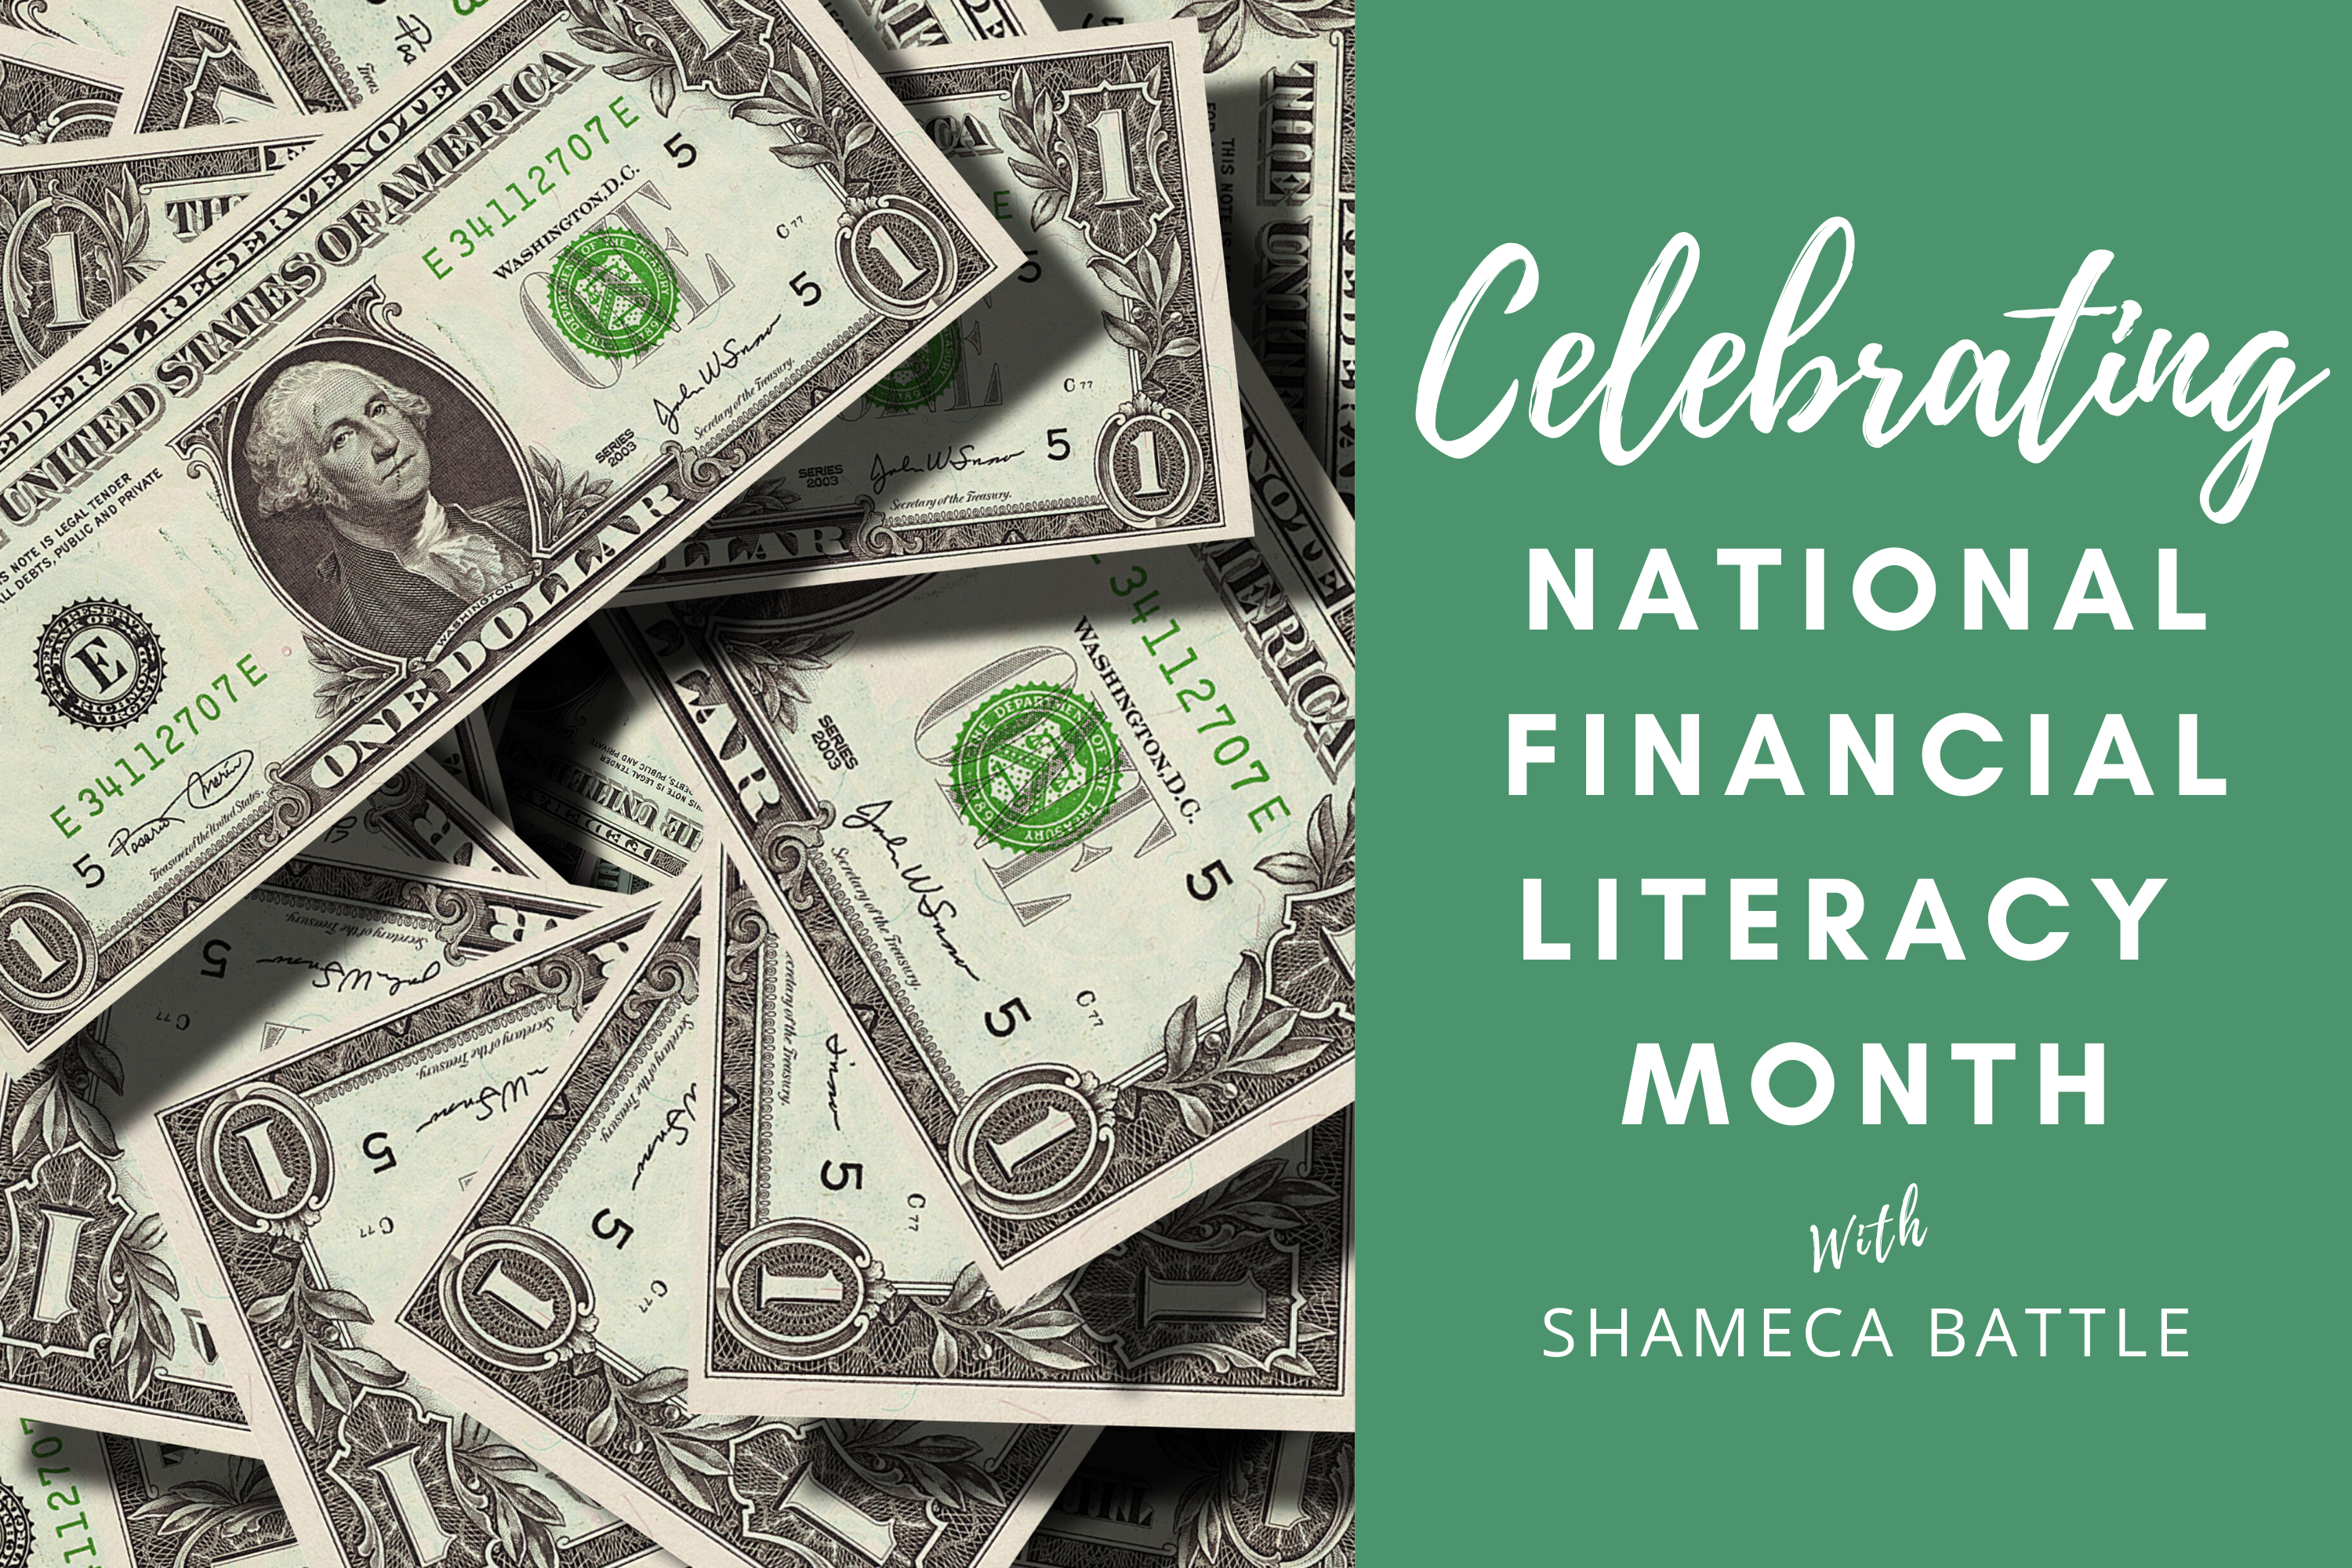 Celebrating Financial Literacy Month